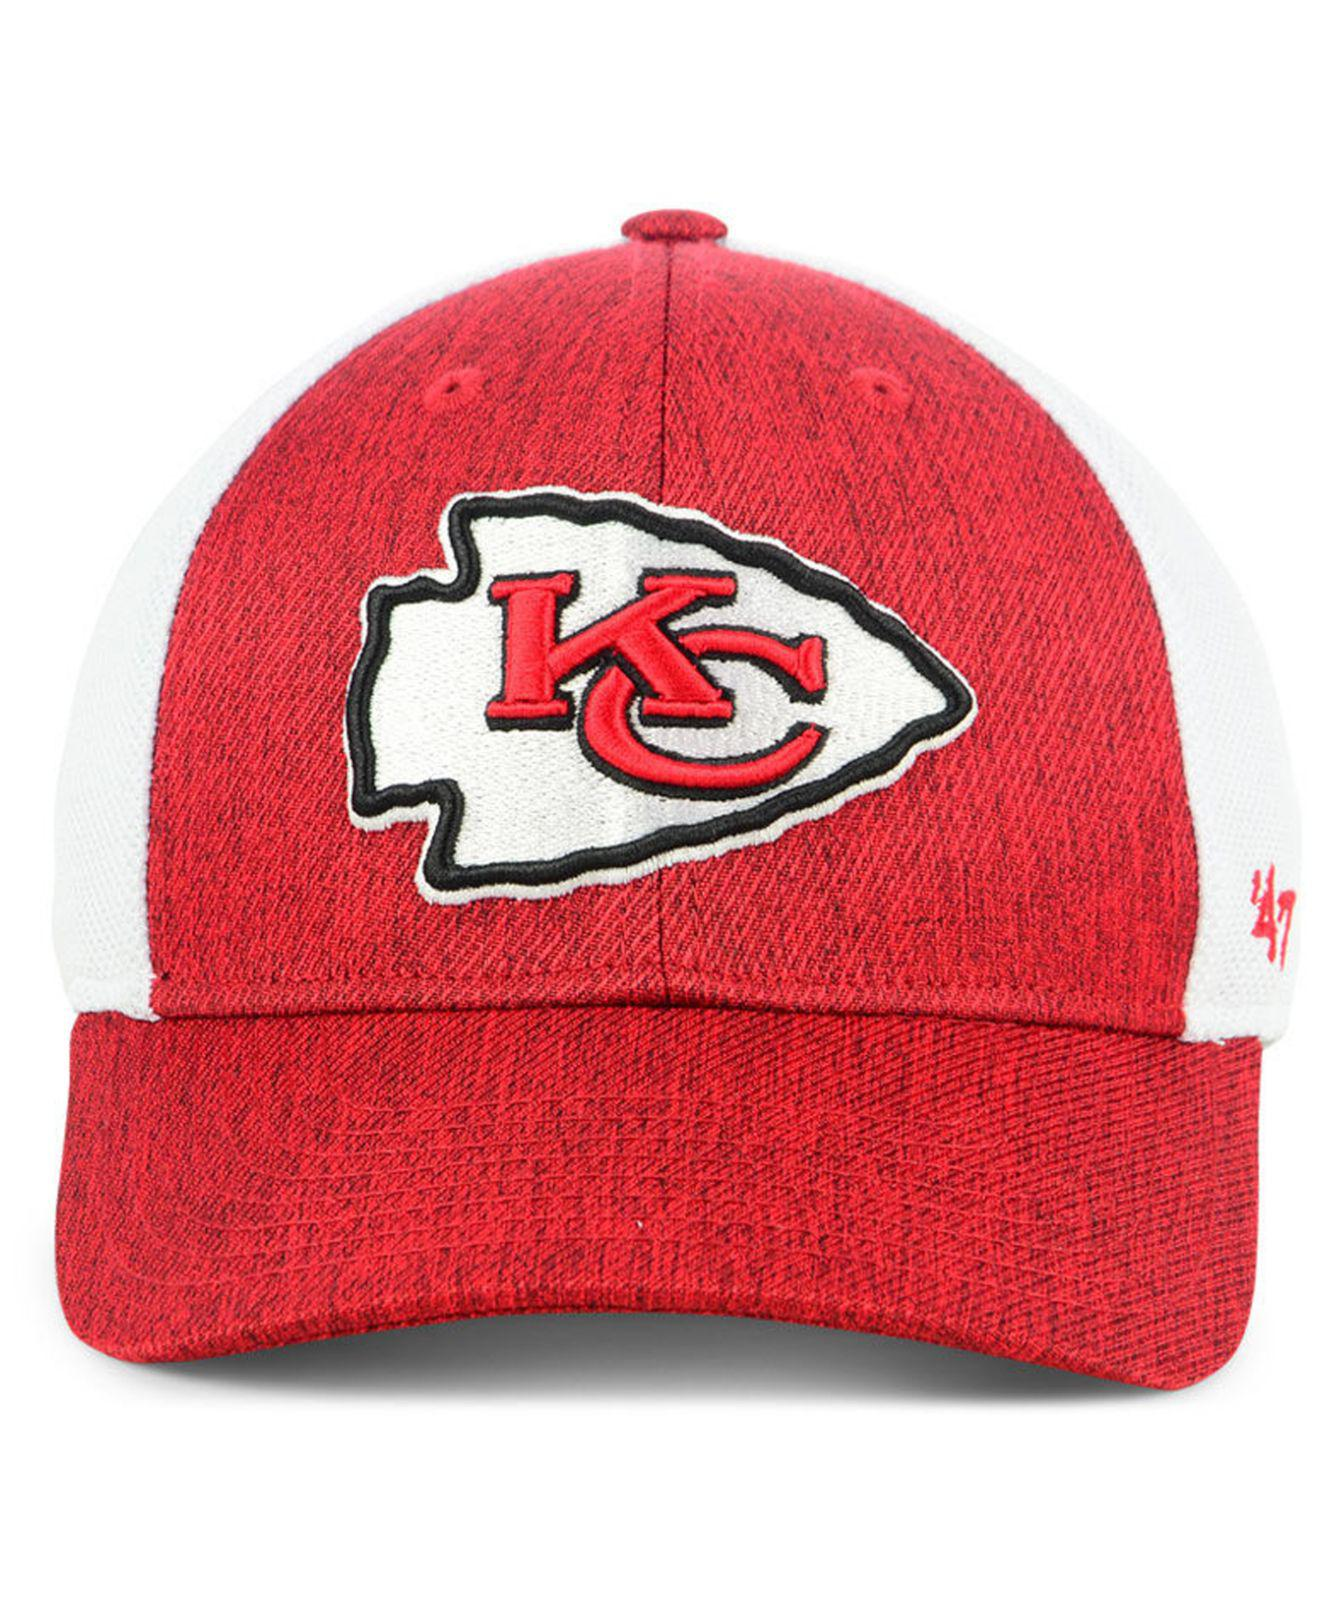 info for 8214a 2f49c ... coupon lyst 47 brand kansas city chiefs hazy flex contender stretch  fitted cap in red for